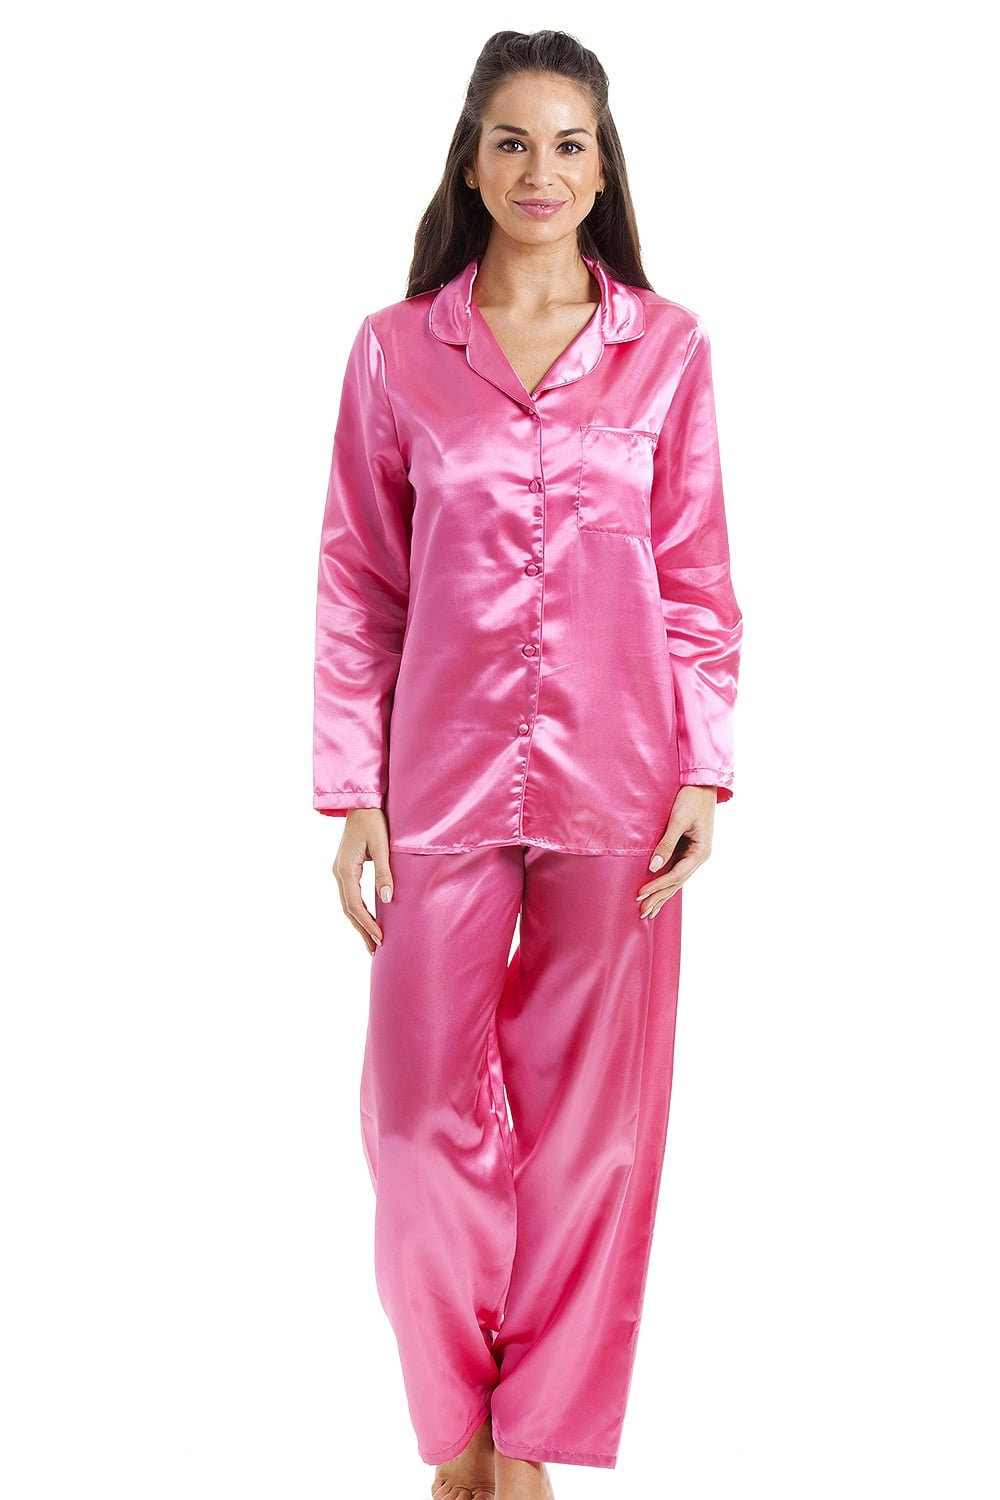 7 Pc Satin Nightwear Set in stretchable poly-knit satin fatalovely.cfns long nighty, long robe, top, full length pyjama, short nighty and a matching string bra brief fatalovely.cf makes a great gift set with its excellent drape, smooth feel and shiny fatalovely.cfed with a cute contrast lace fatalovely.cfes a piece for every mood and occasion.